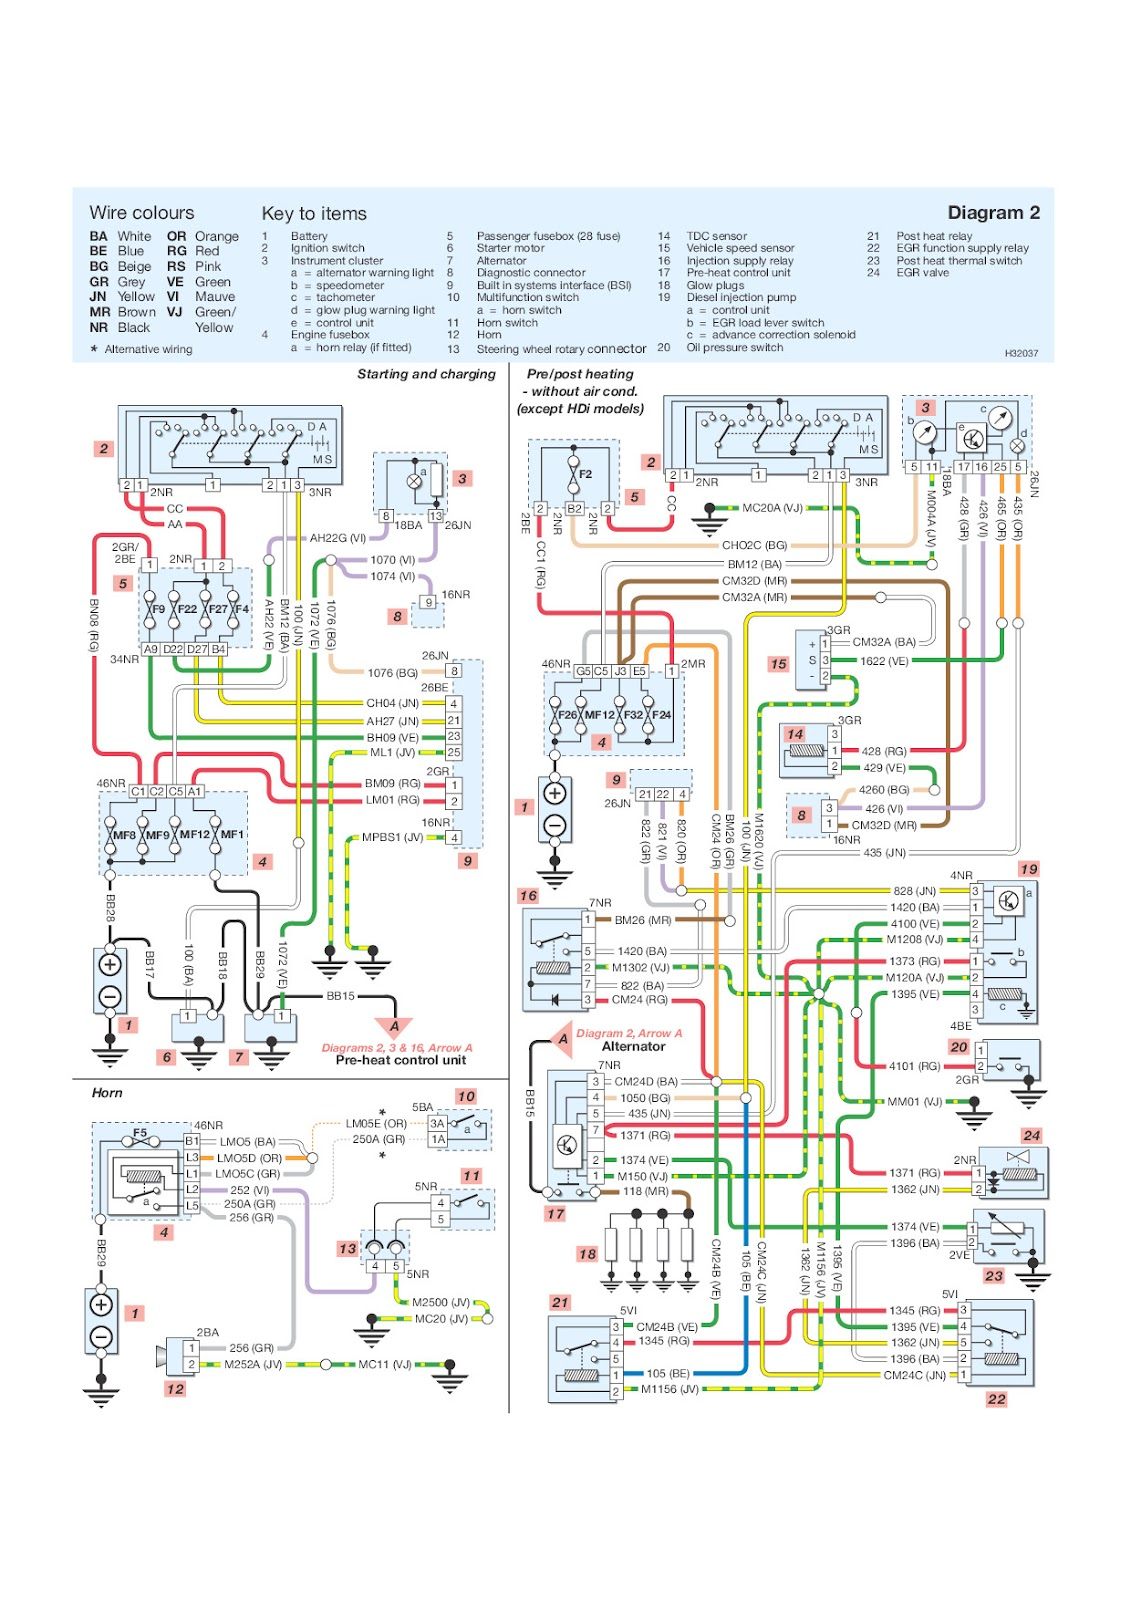 your wiring diagrams source: peugeot 206 starting ... peugeot wiring diagrams 206 peugeot 206 wiring diagrams rear windows heated window #9